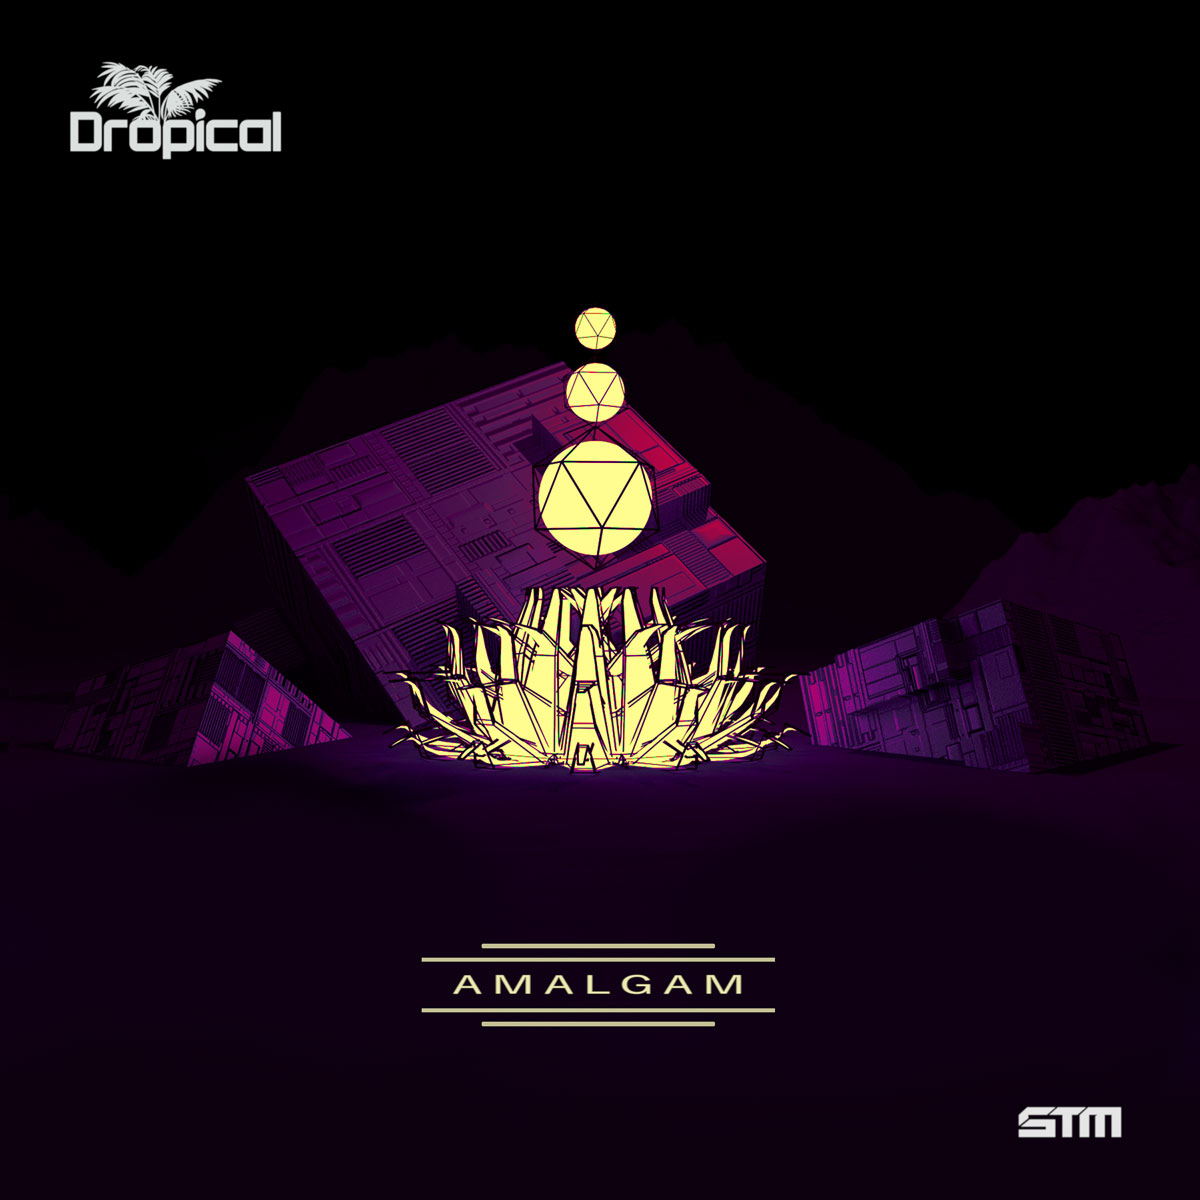 Dropical - Amalgam